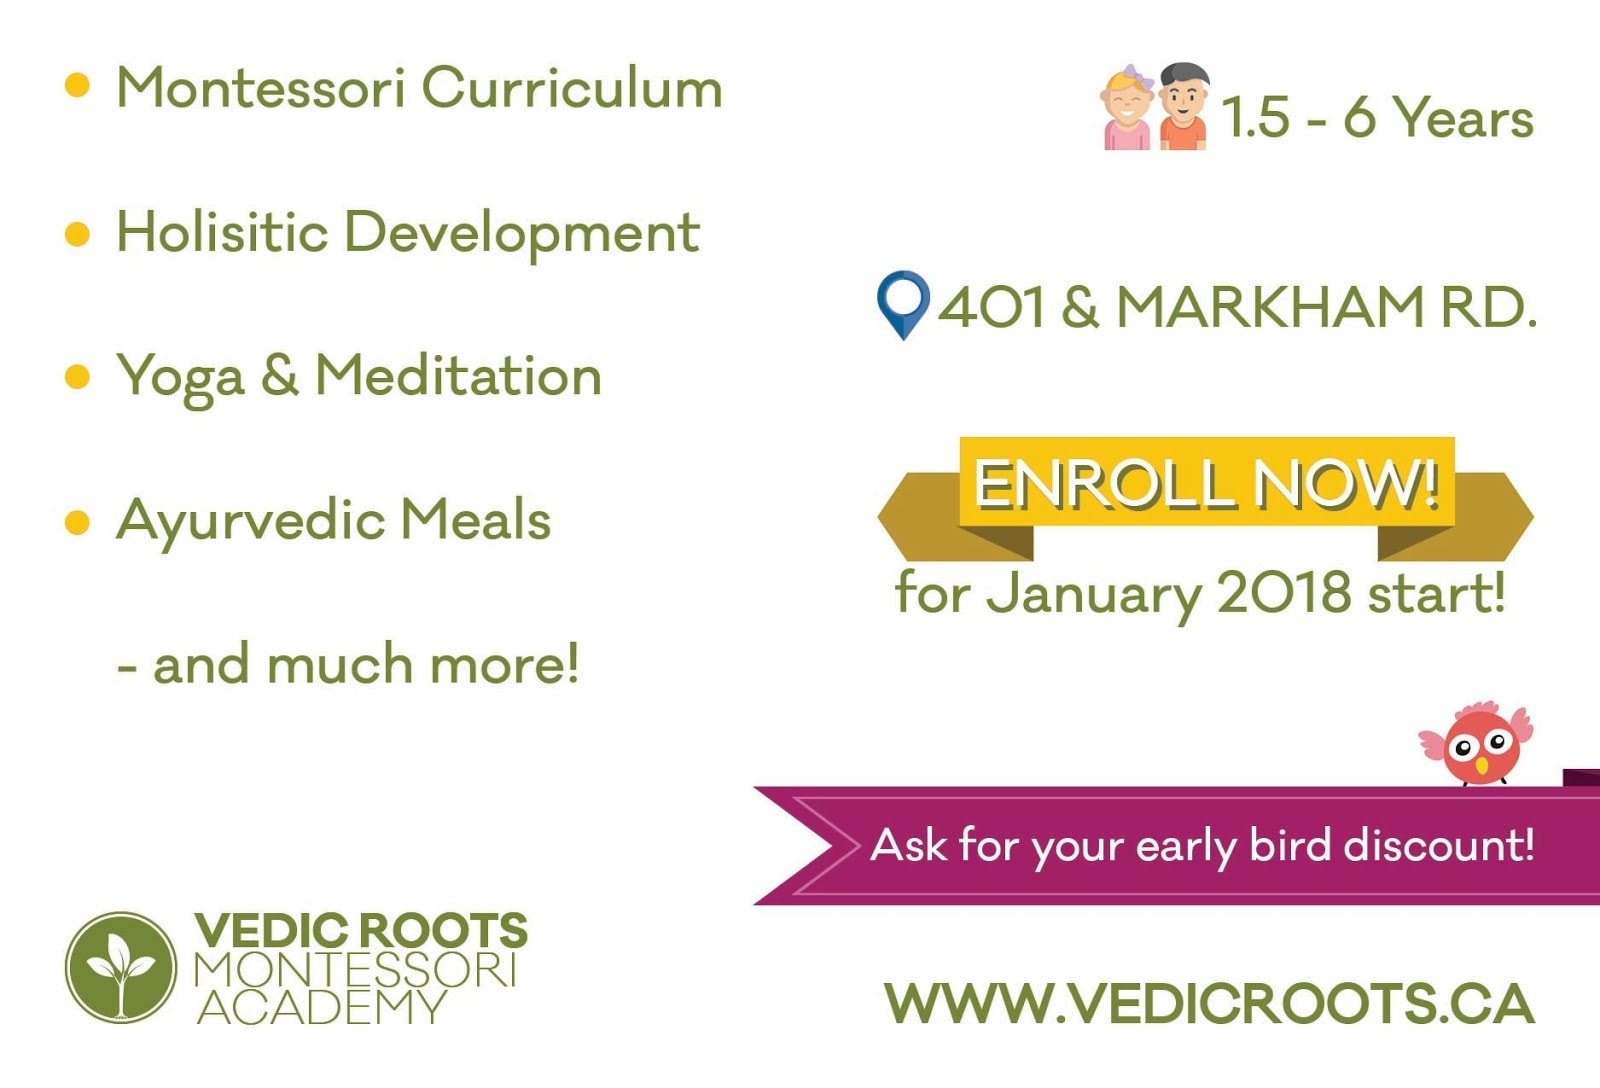 Vedic Roots Montessori Academy